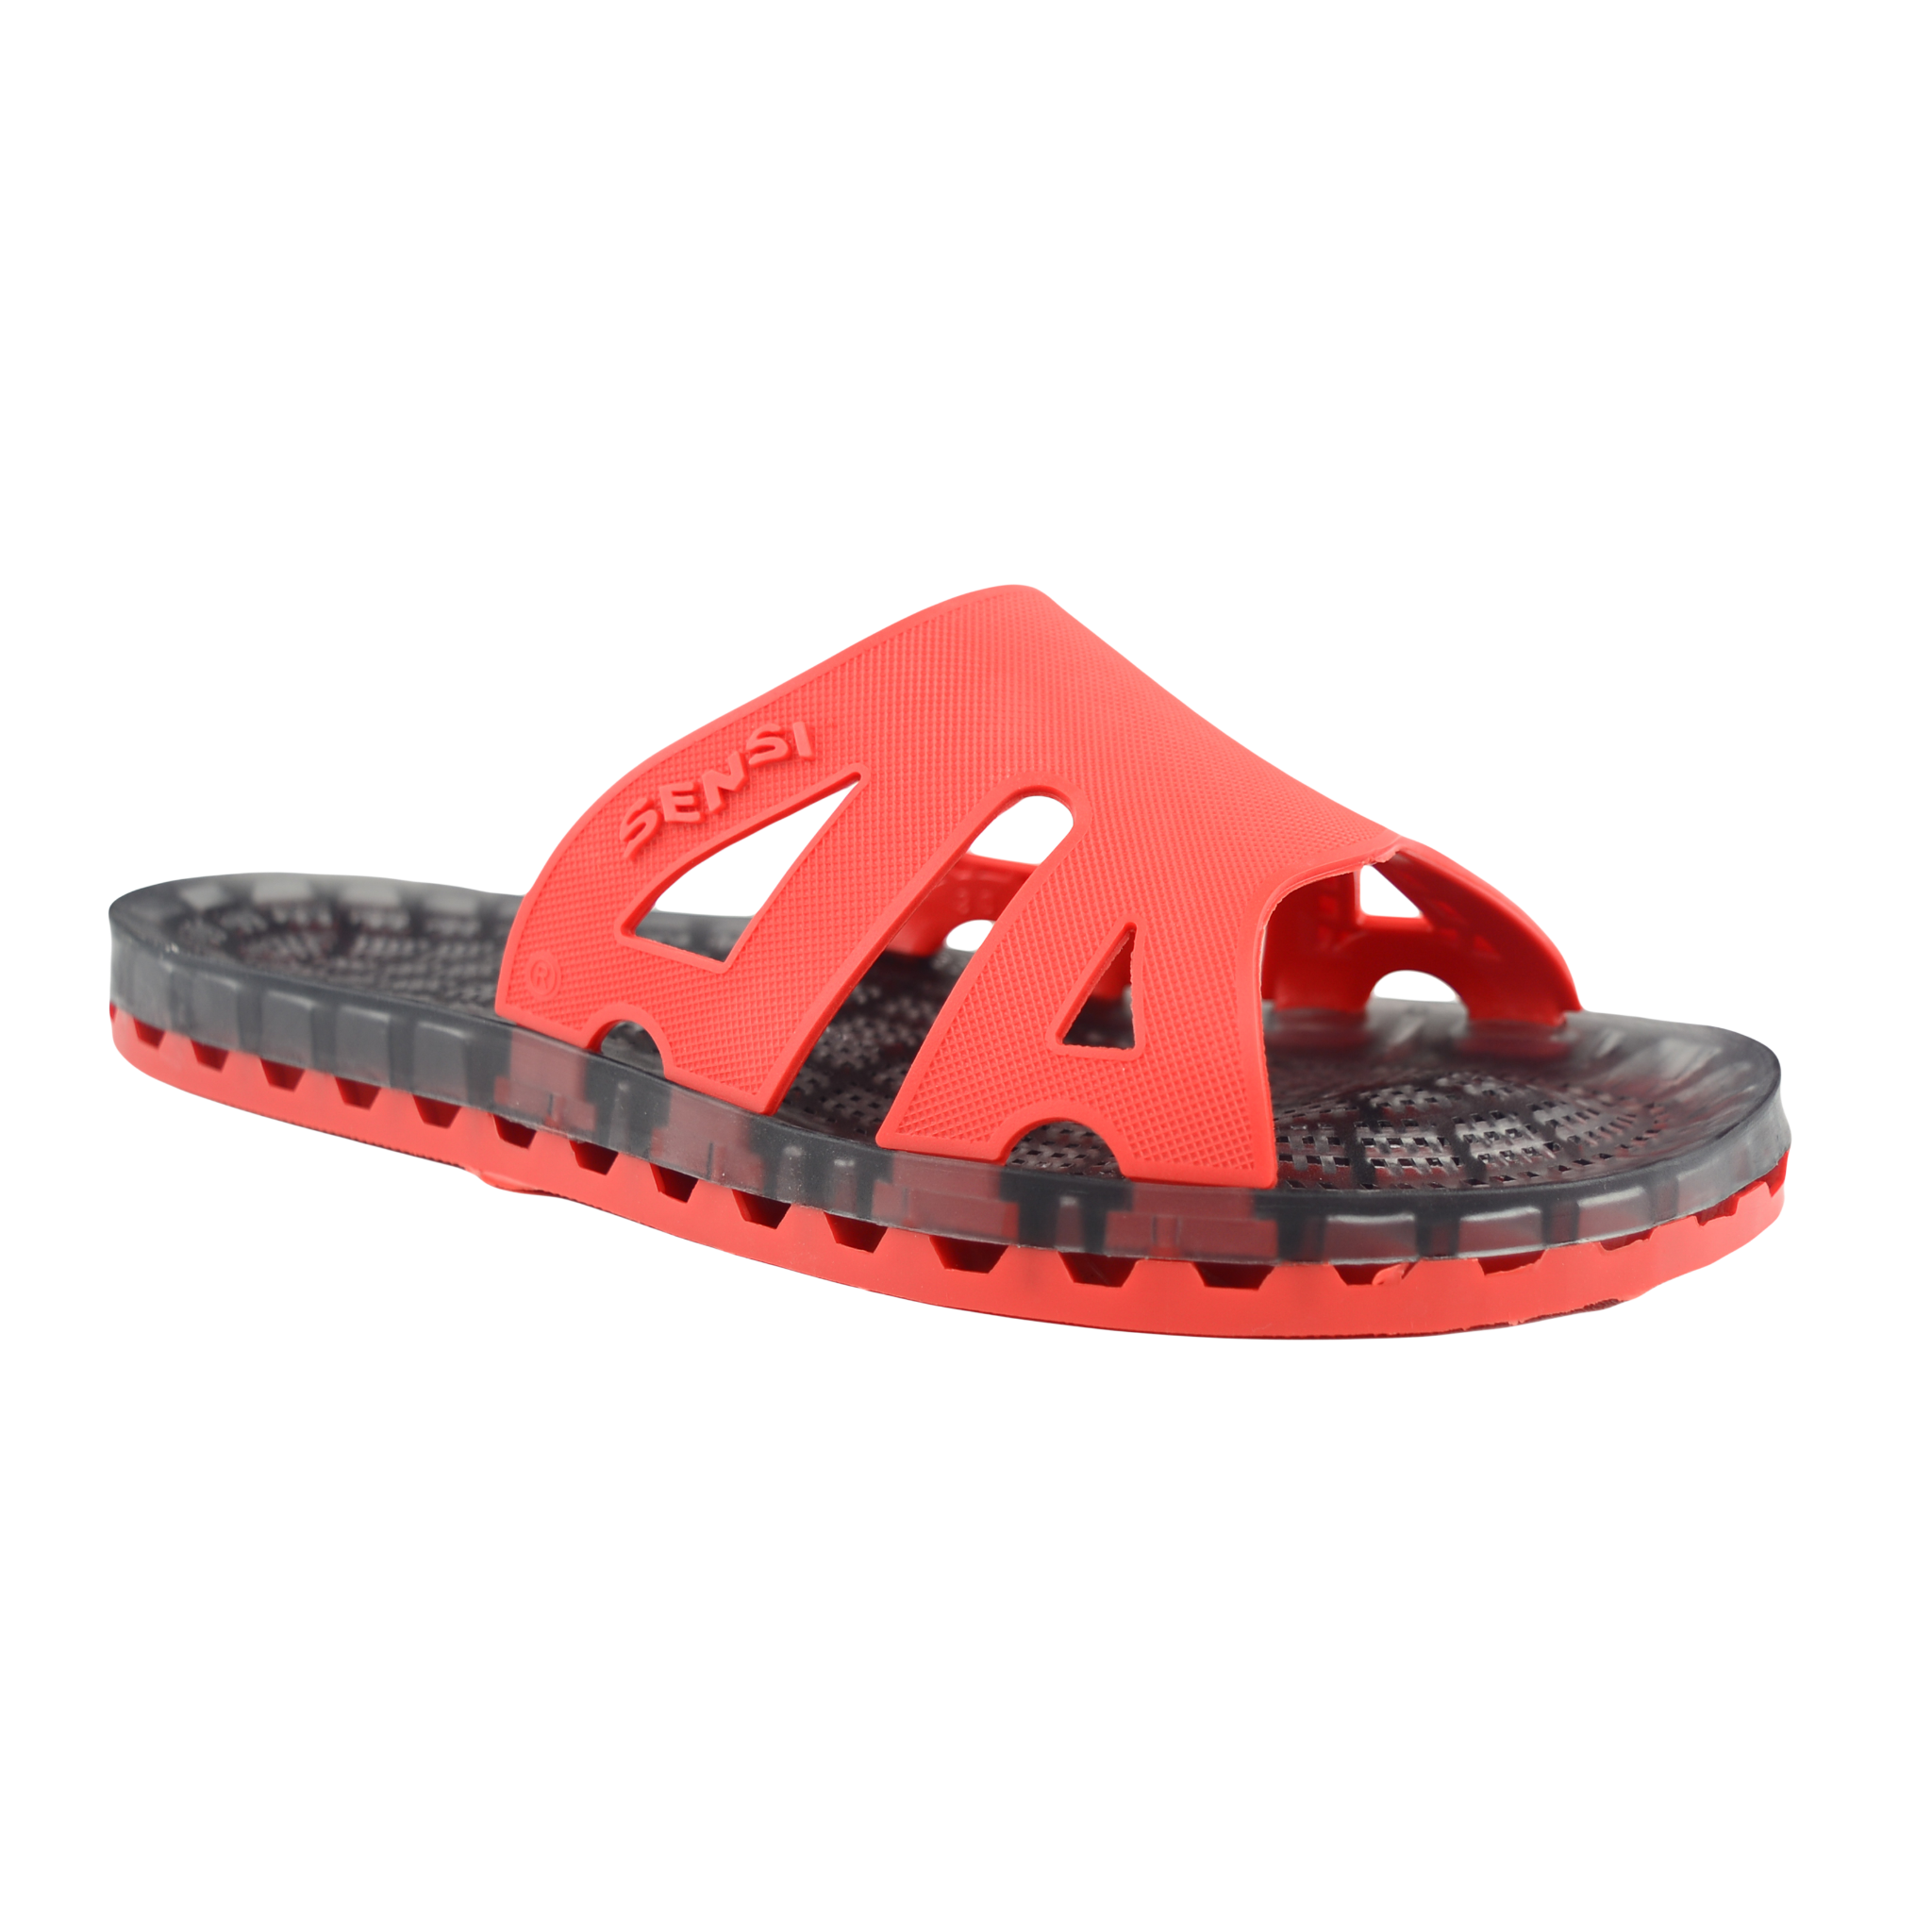 Regatta Basic - London Slide Sandal - Red